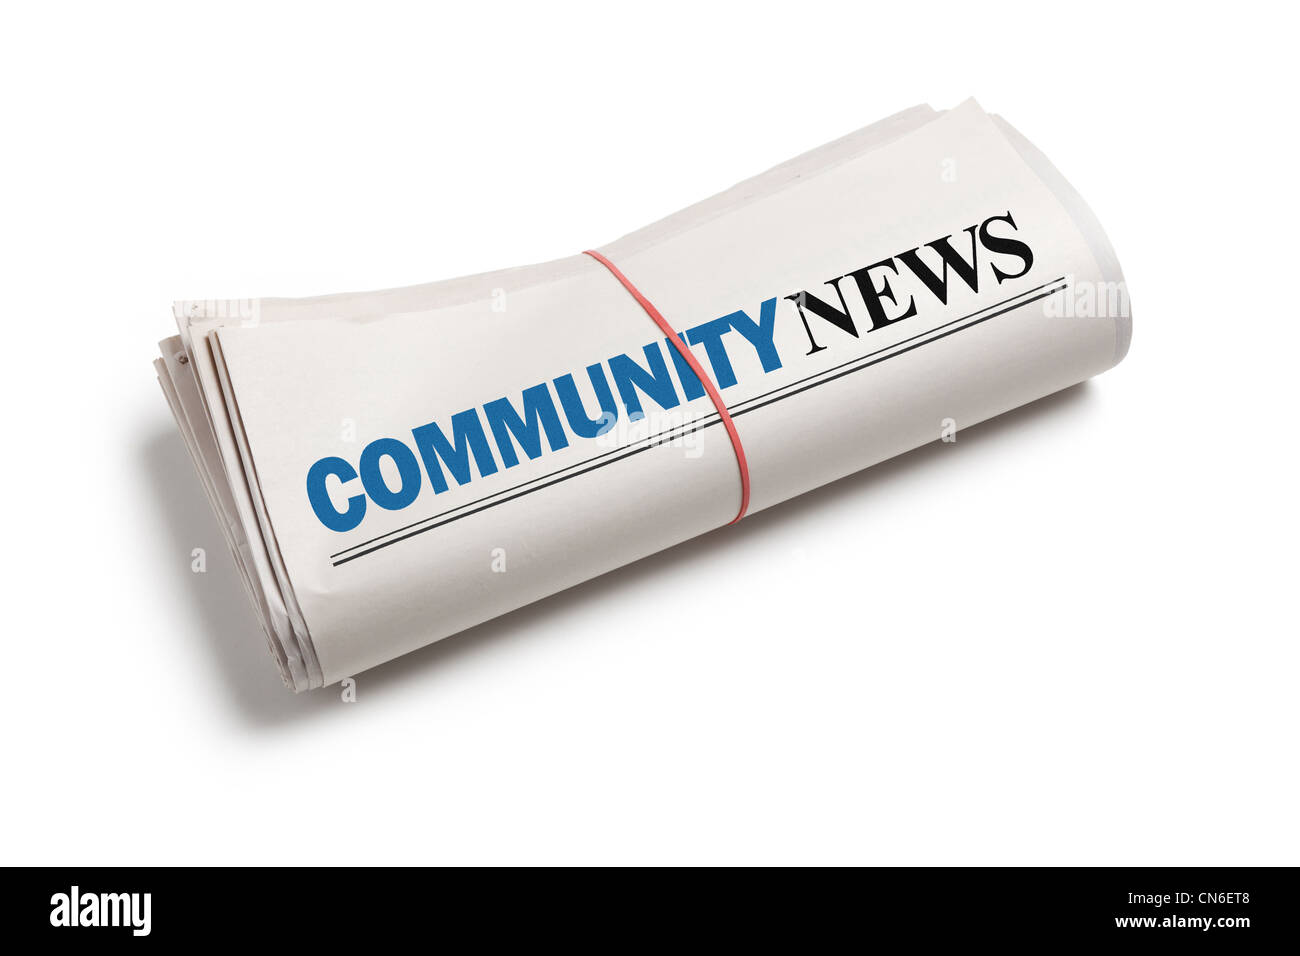 Community News, Newspaper roll with white background - Stock Image